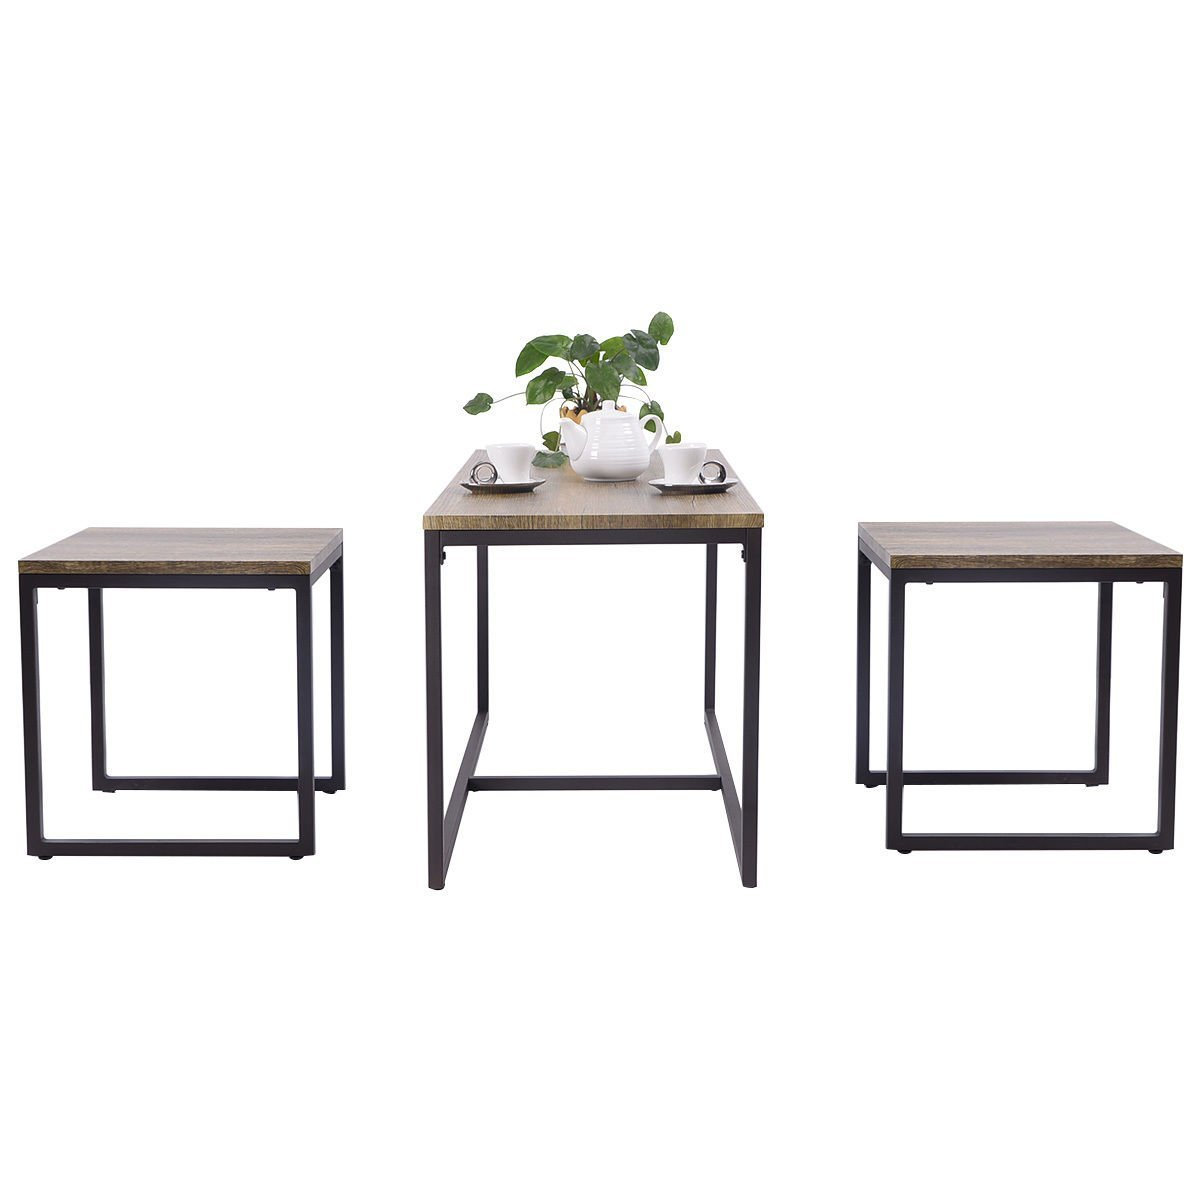 Heaven Tvcz Set Wood Modern 3Piece Nesting Coffee & End Table Furniture Decor Living Room Graceful Elegance To Your Living Room.